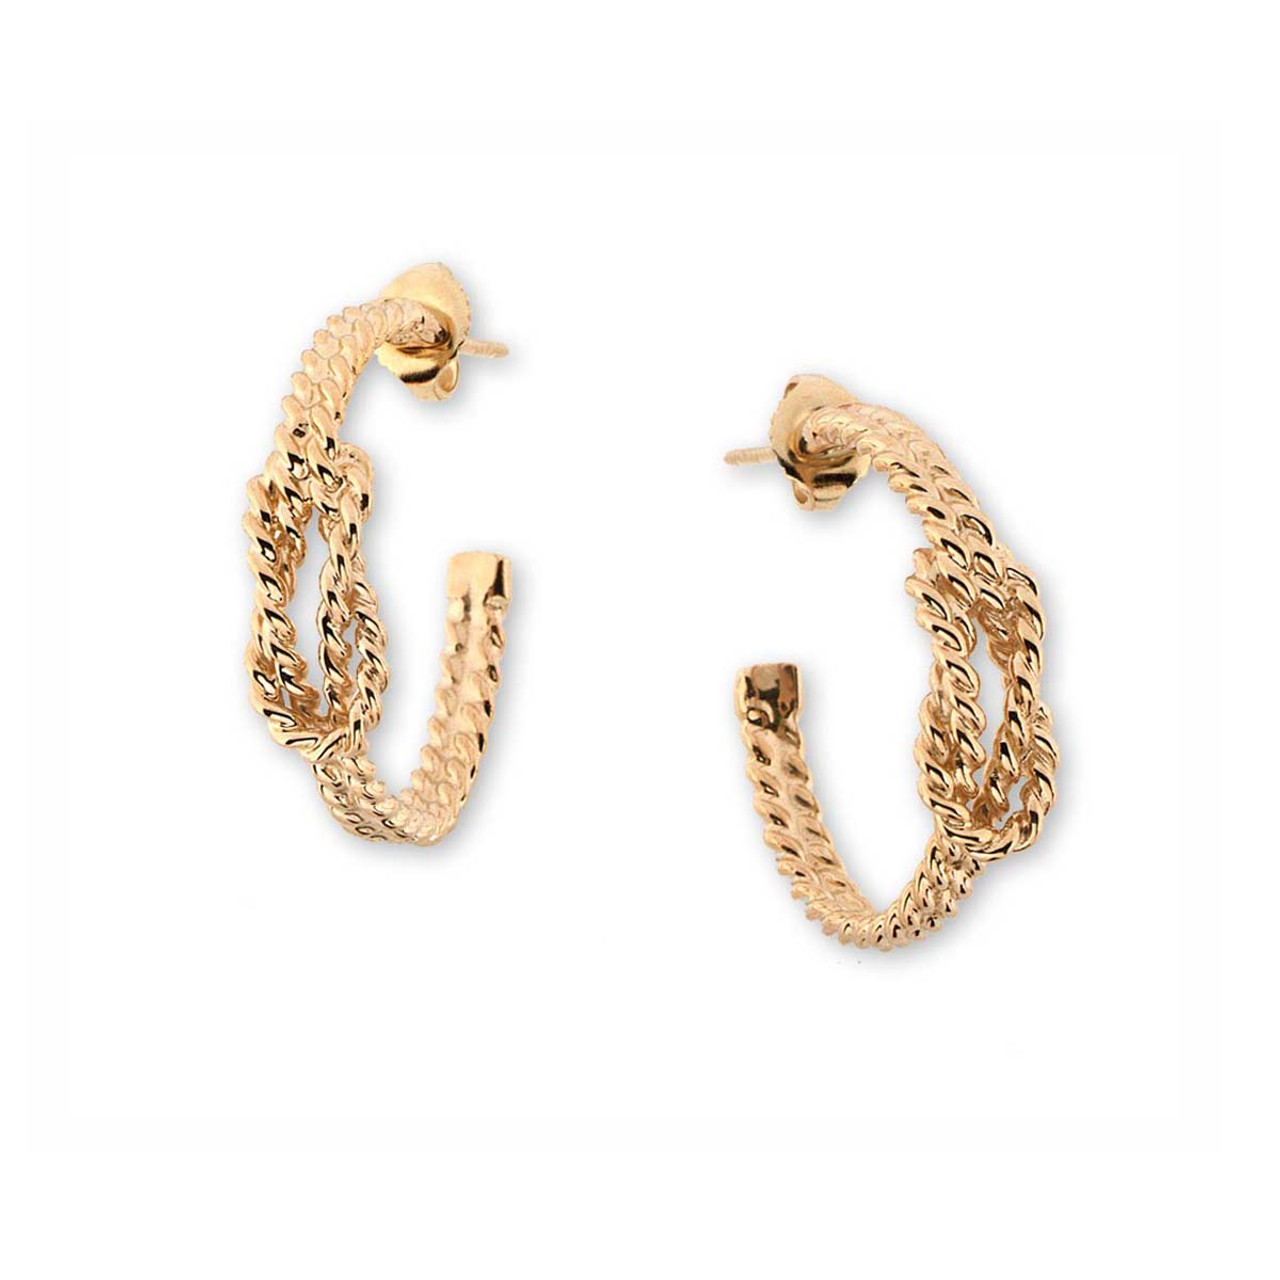 d724e7414 Shop Classic Collection Of Square Knot Earrings